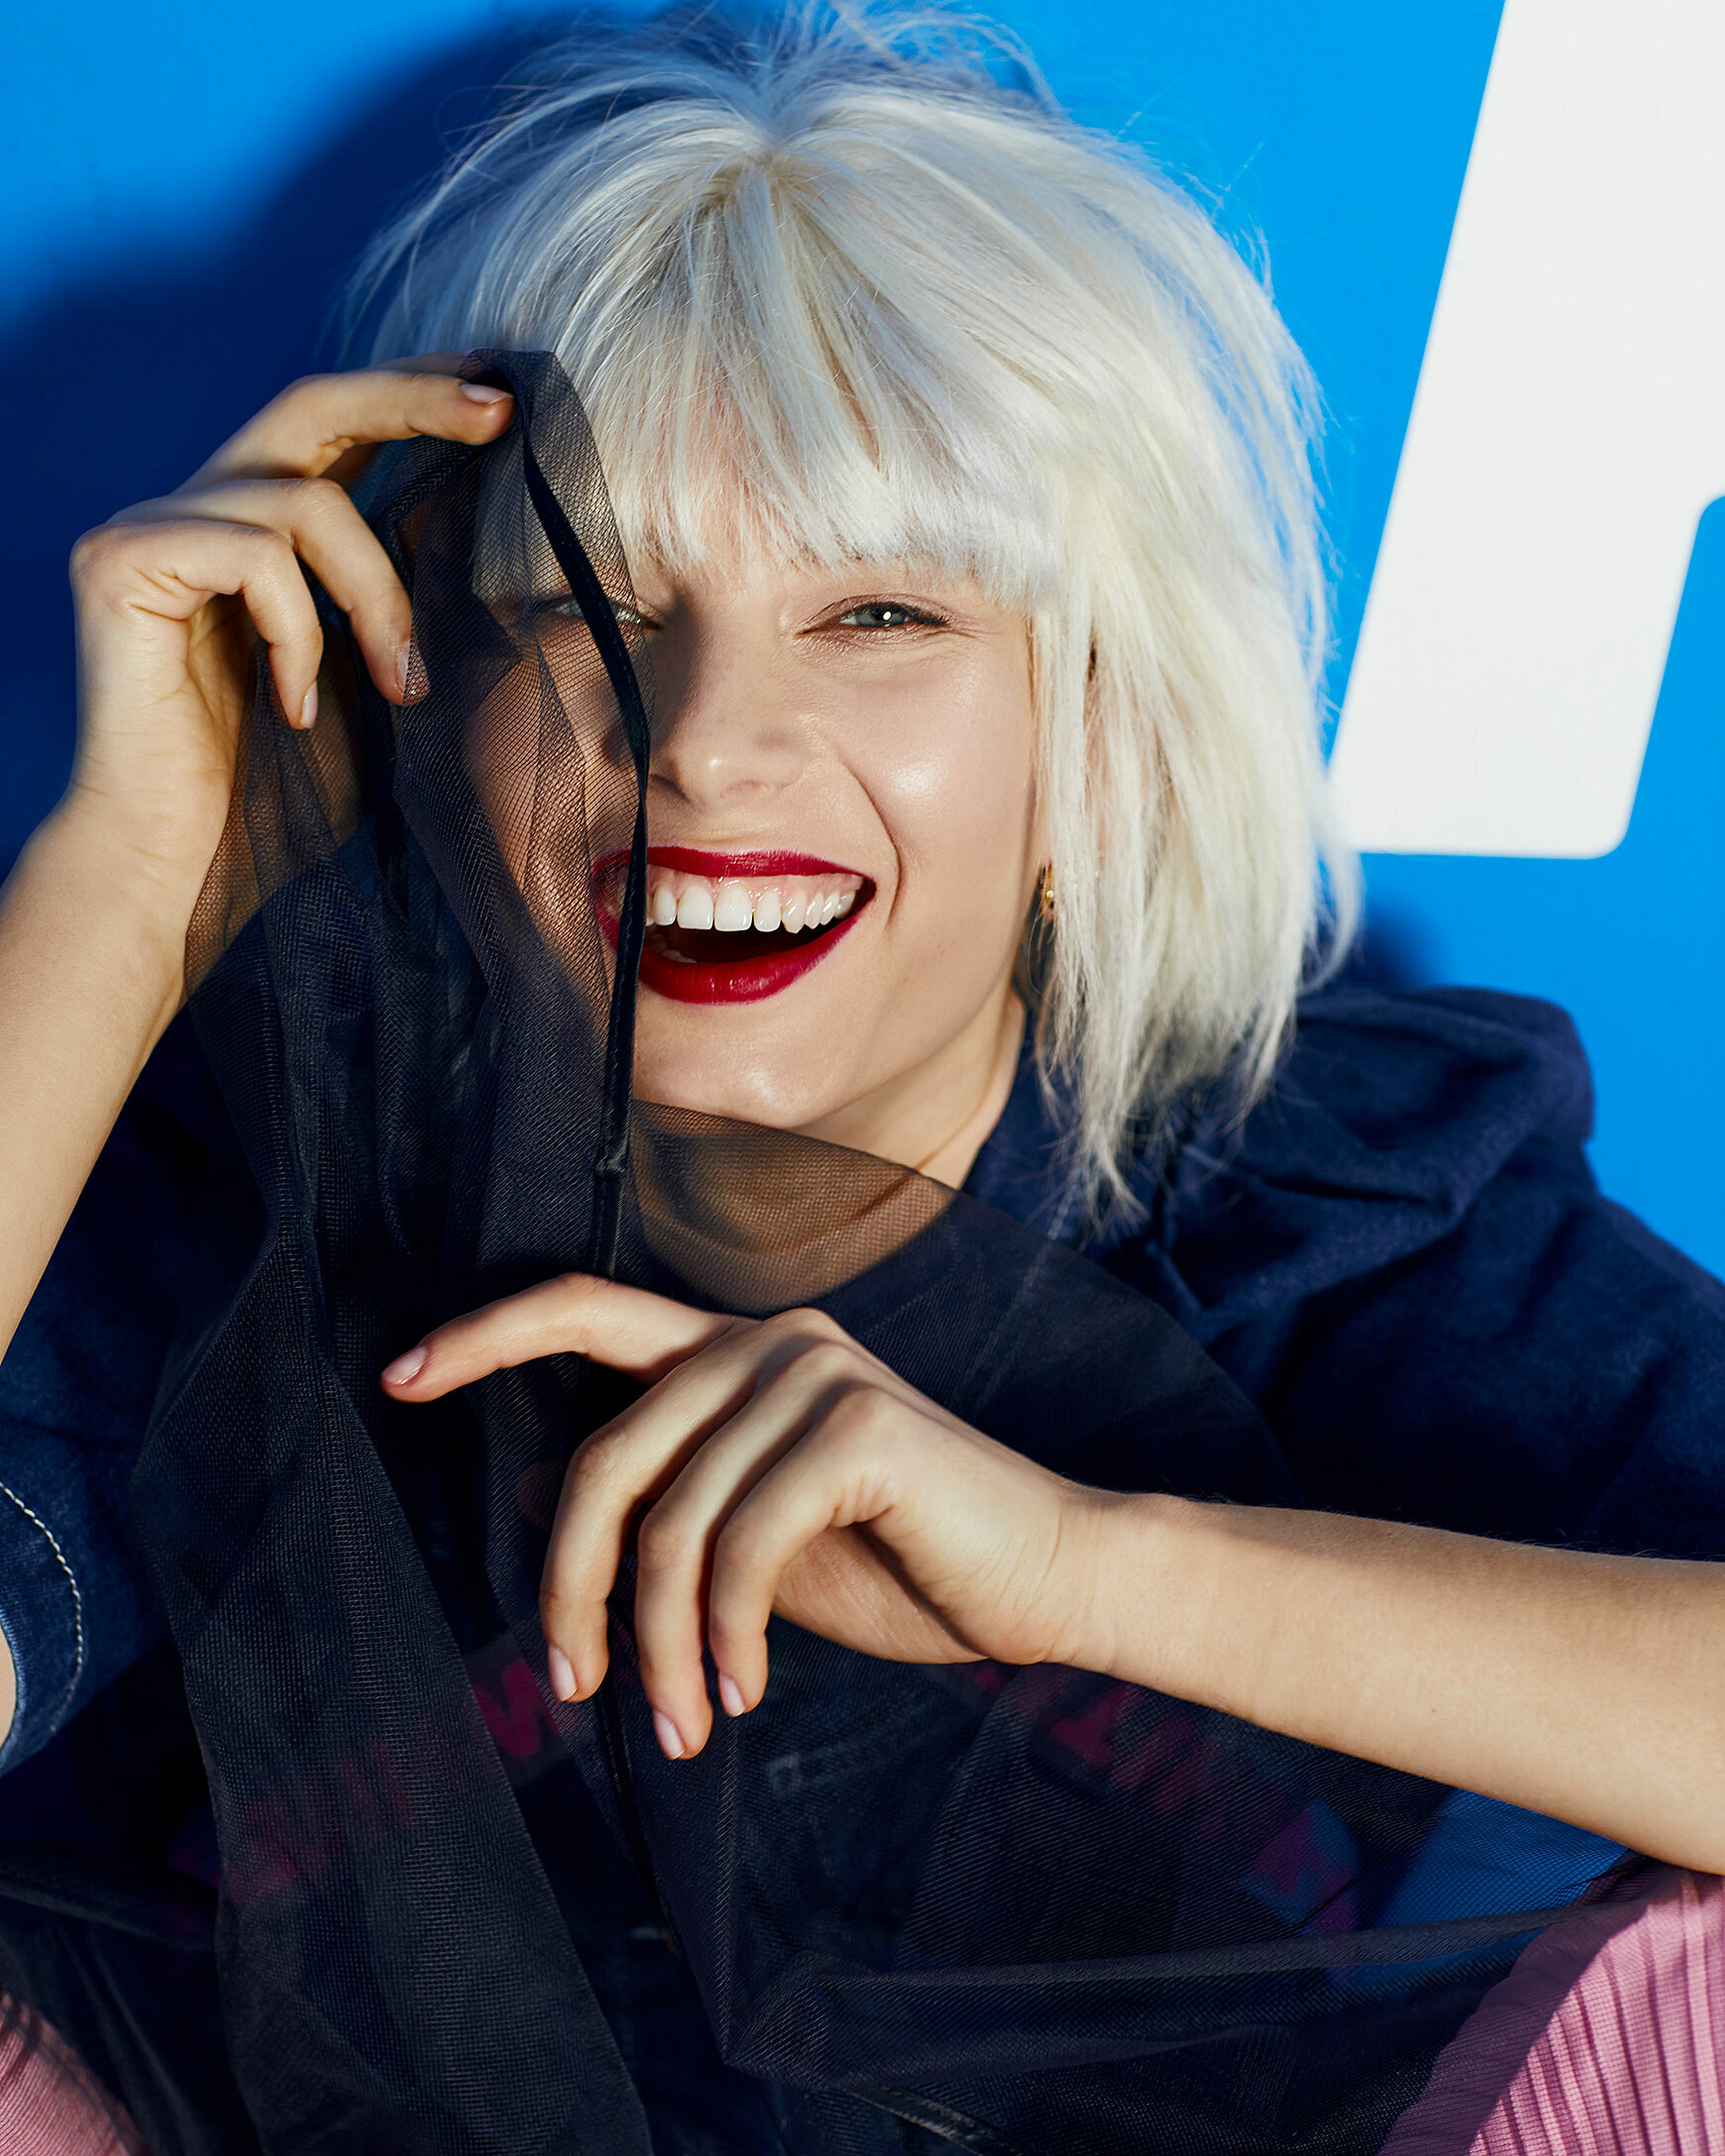 A close up of a female model with a blonde wig. She laughs direct in the camera and hold black semi-tranparency cloth in her hand